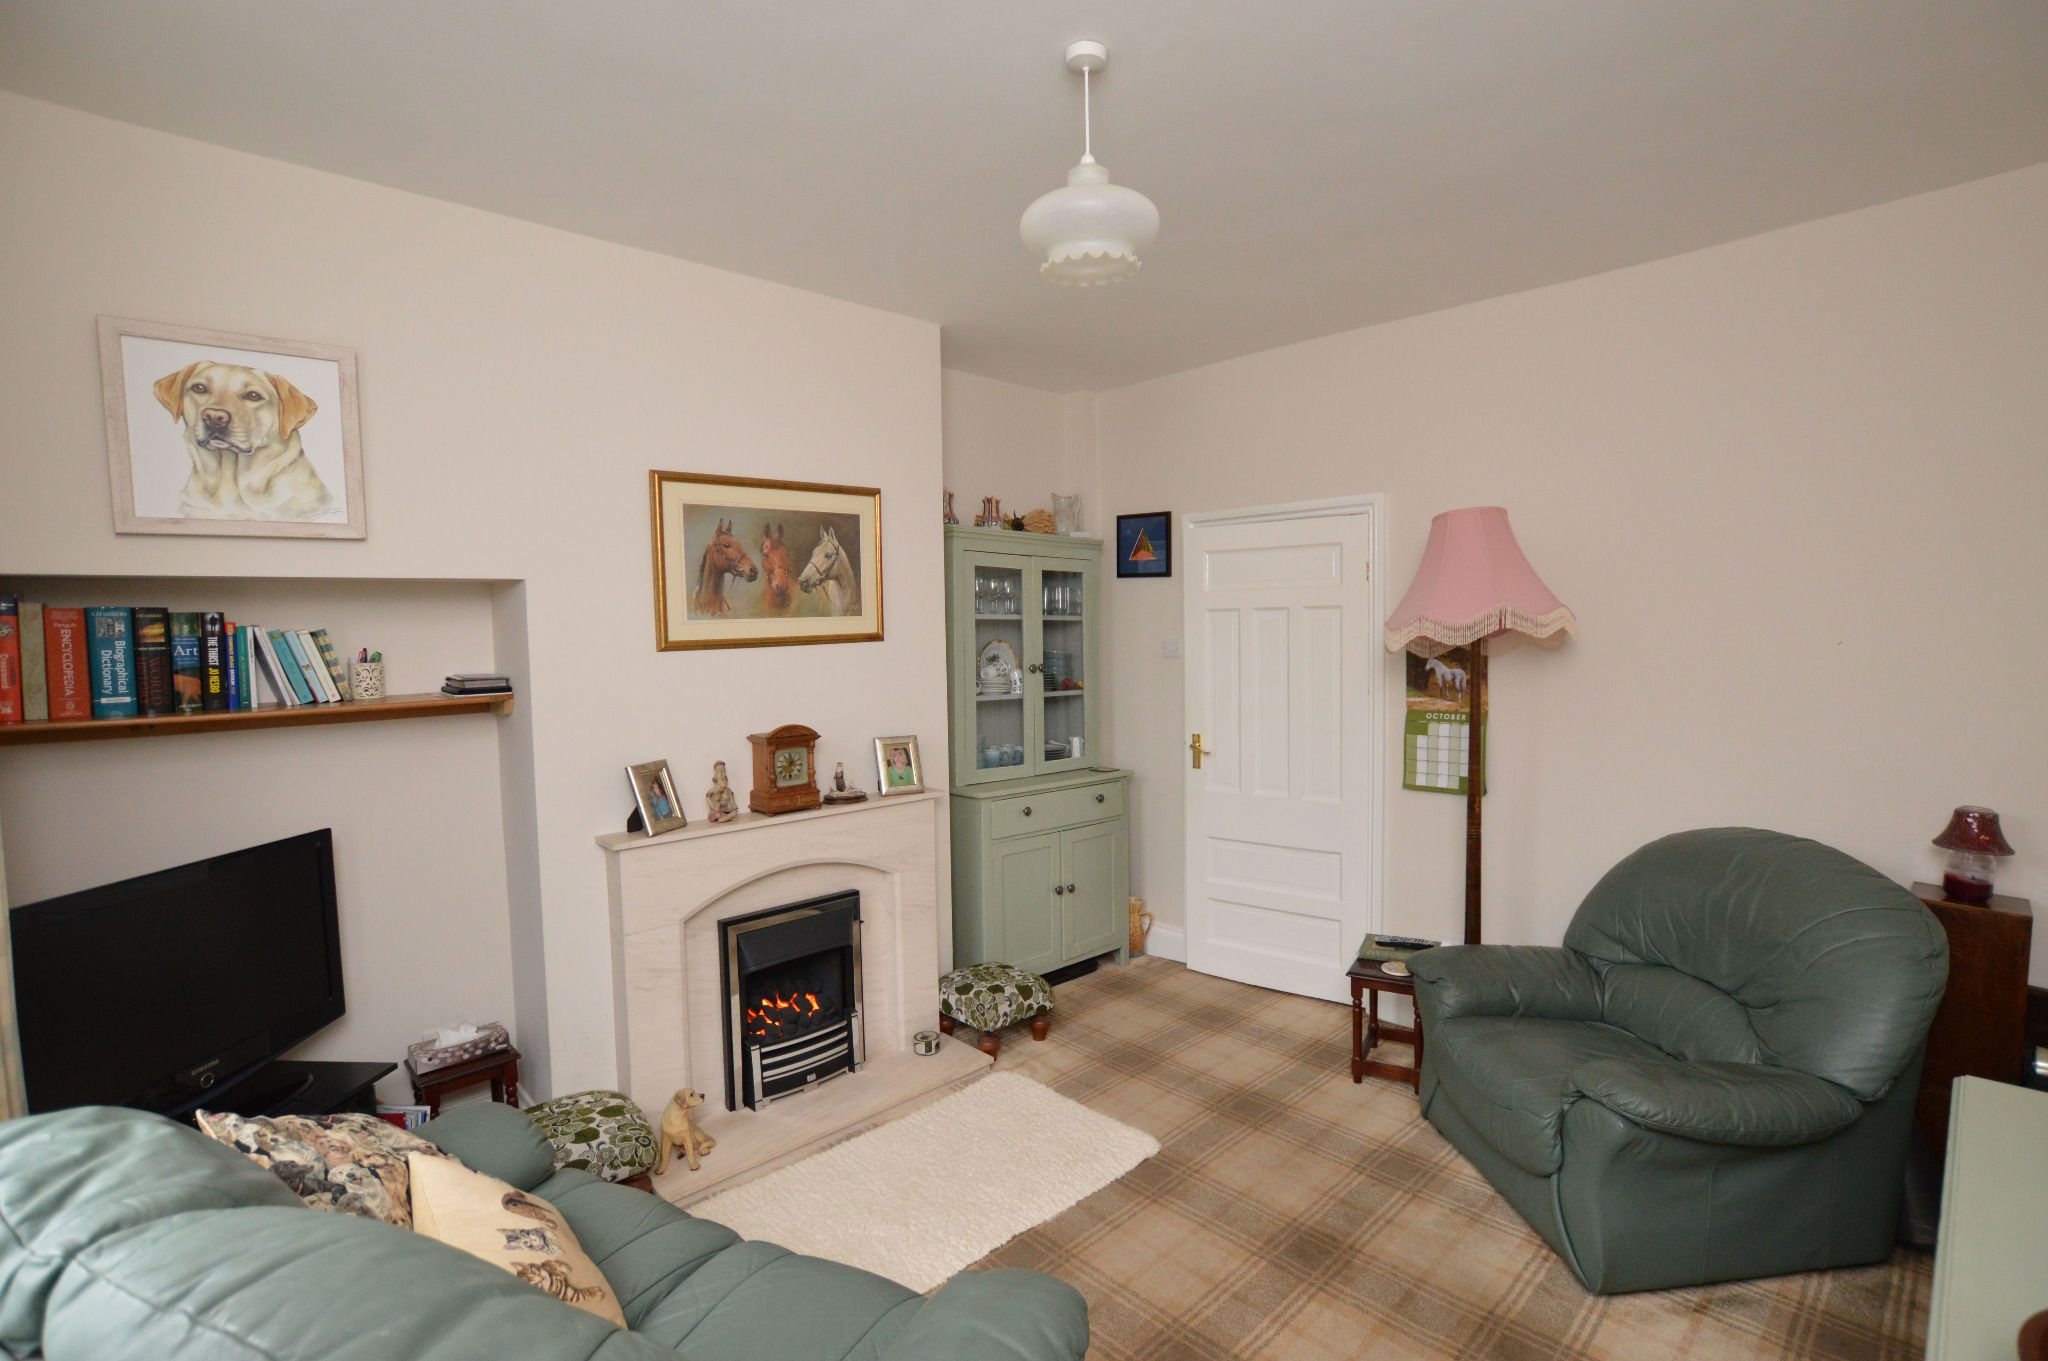 4 bedroom detached bungalow For Sale in Abergele - Reception Room View 3